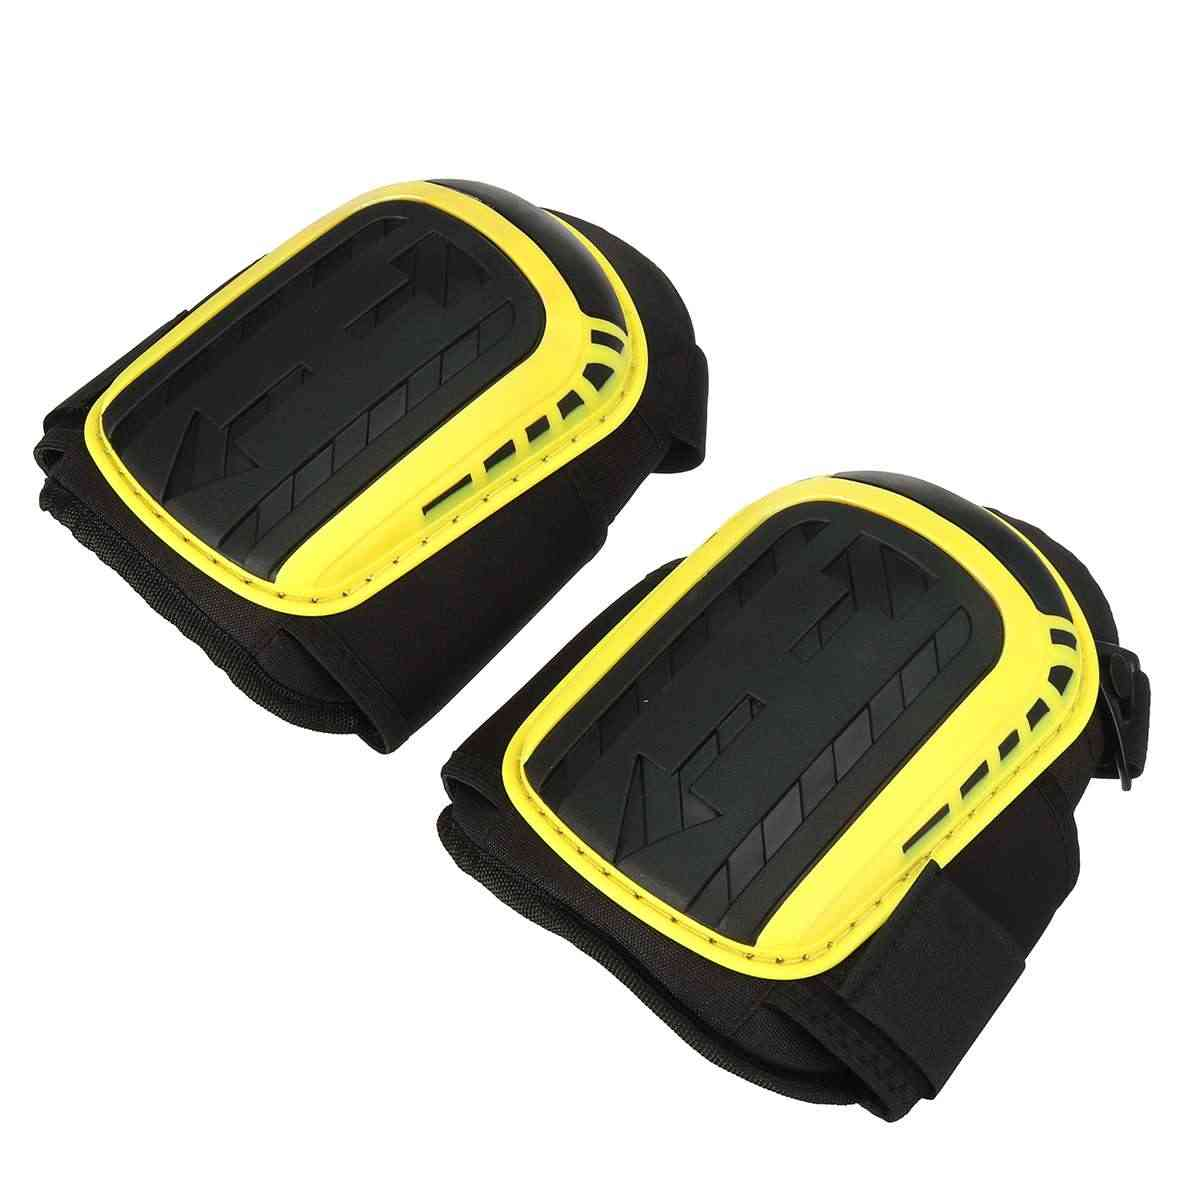 Professional Knee Pad With Eva Foam Gel Cushion For Construction, Concrete